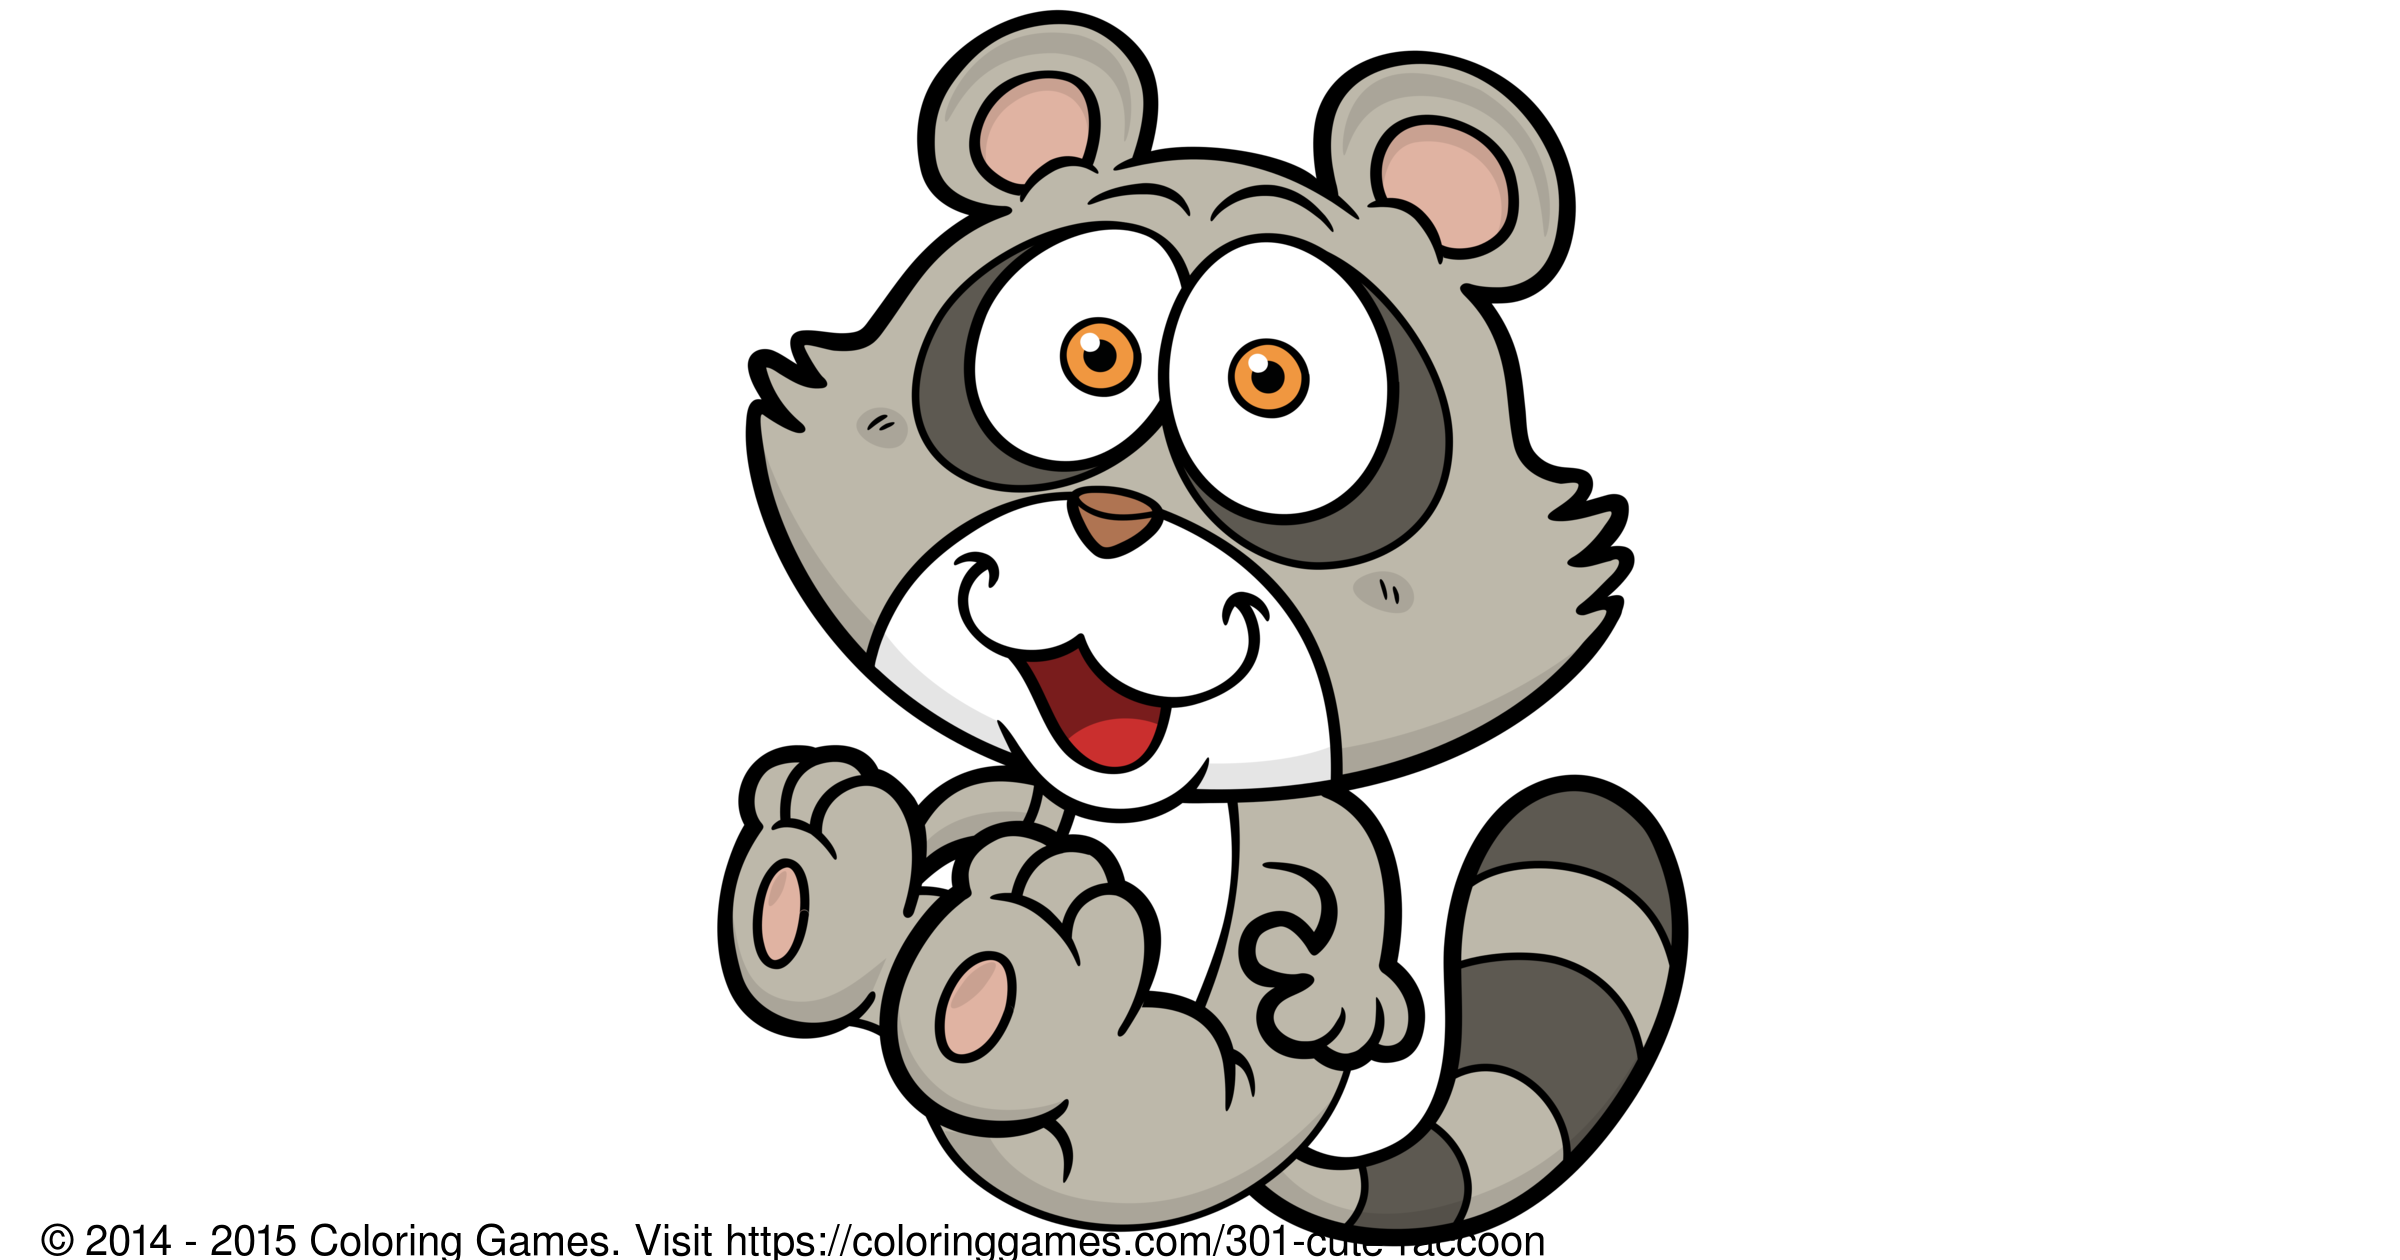 Cute Raccoon Coloring Games and Coloring Pages